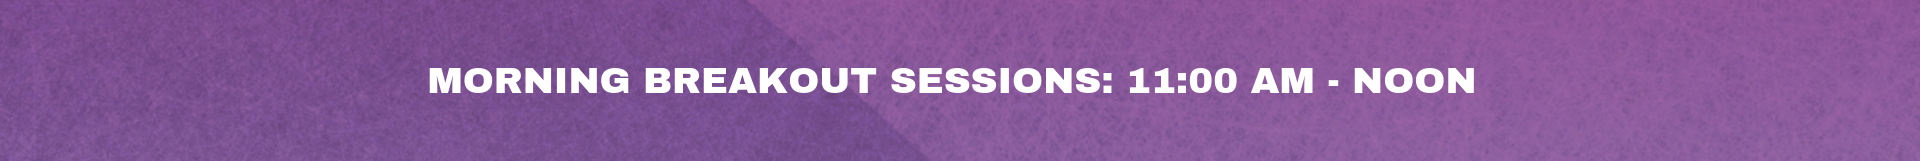 MAIN STAGE KEYNOTE AND PANEL DISCUSSION - MAIN BALLROOM 8_30 AM - 10_40 AM.png